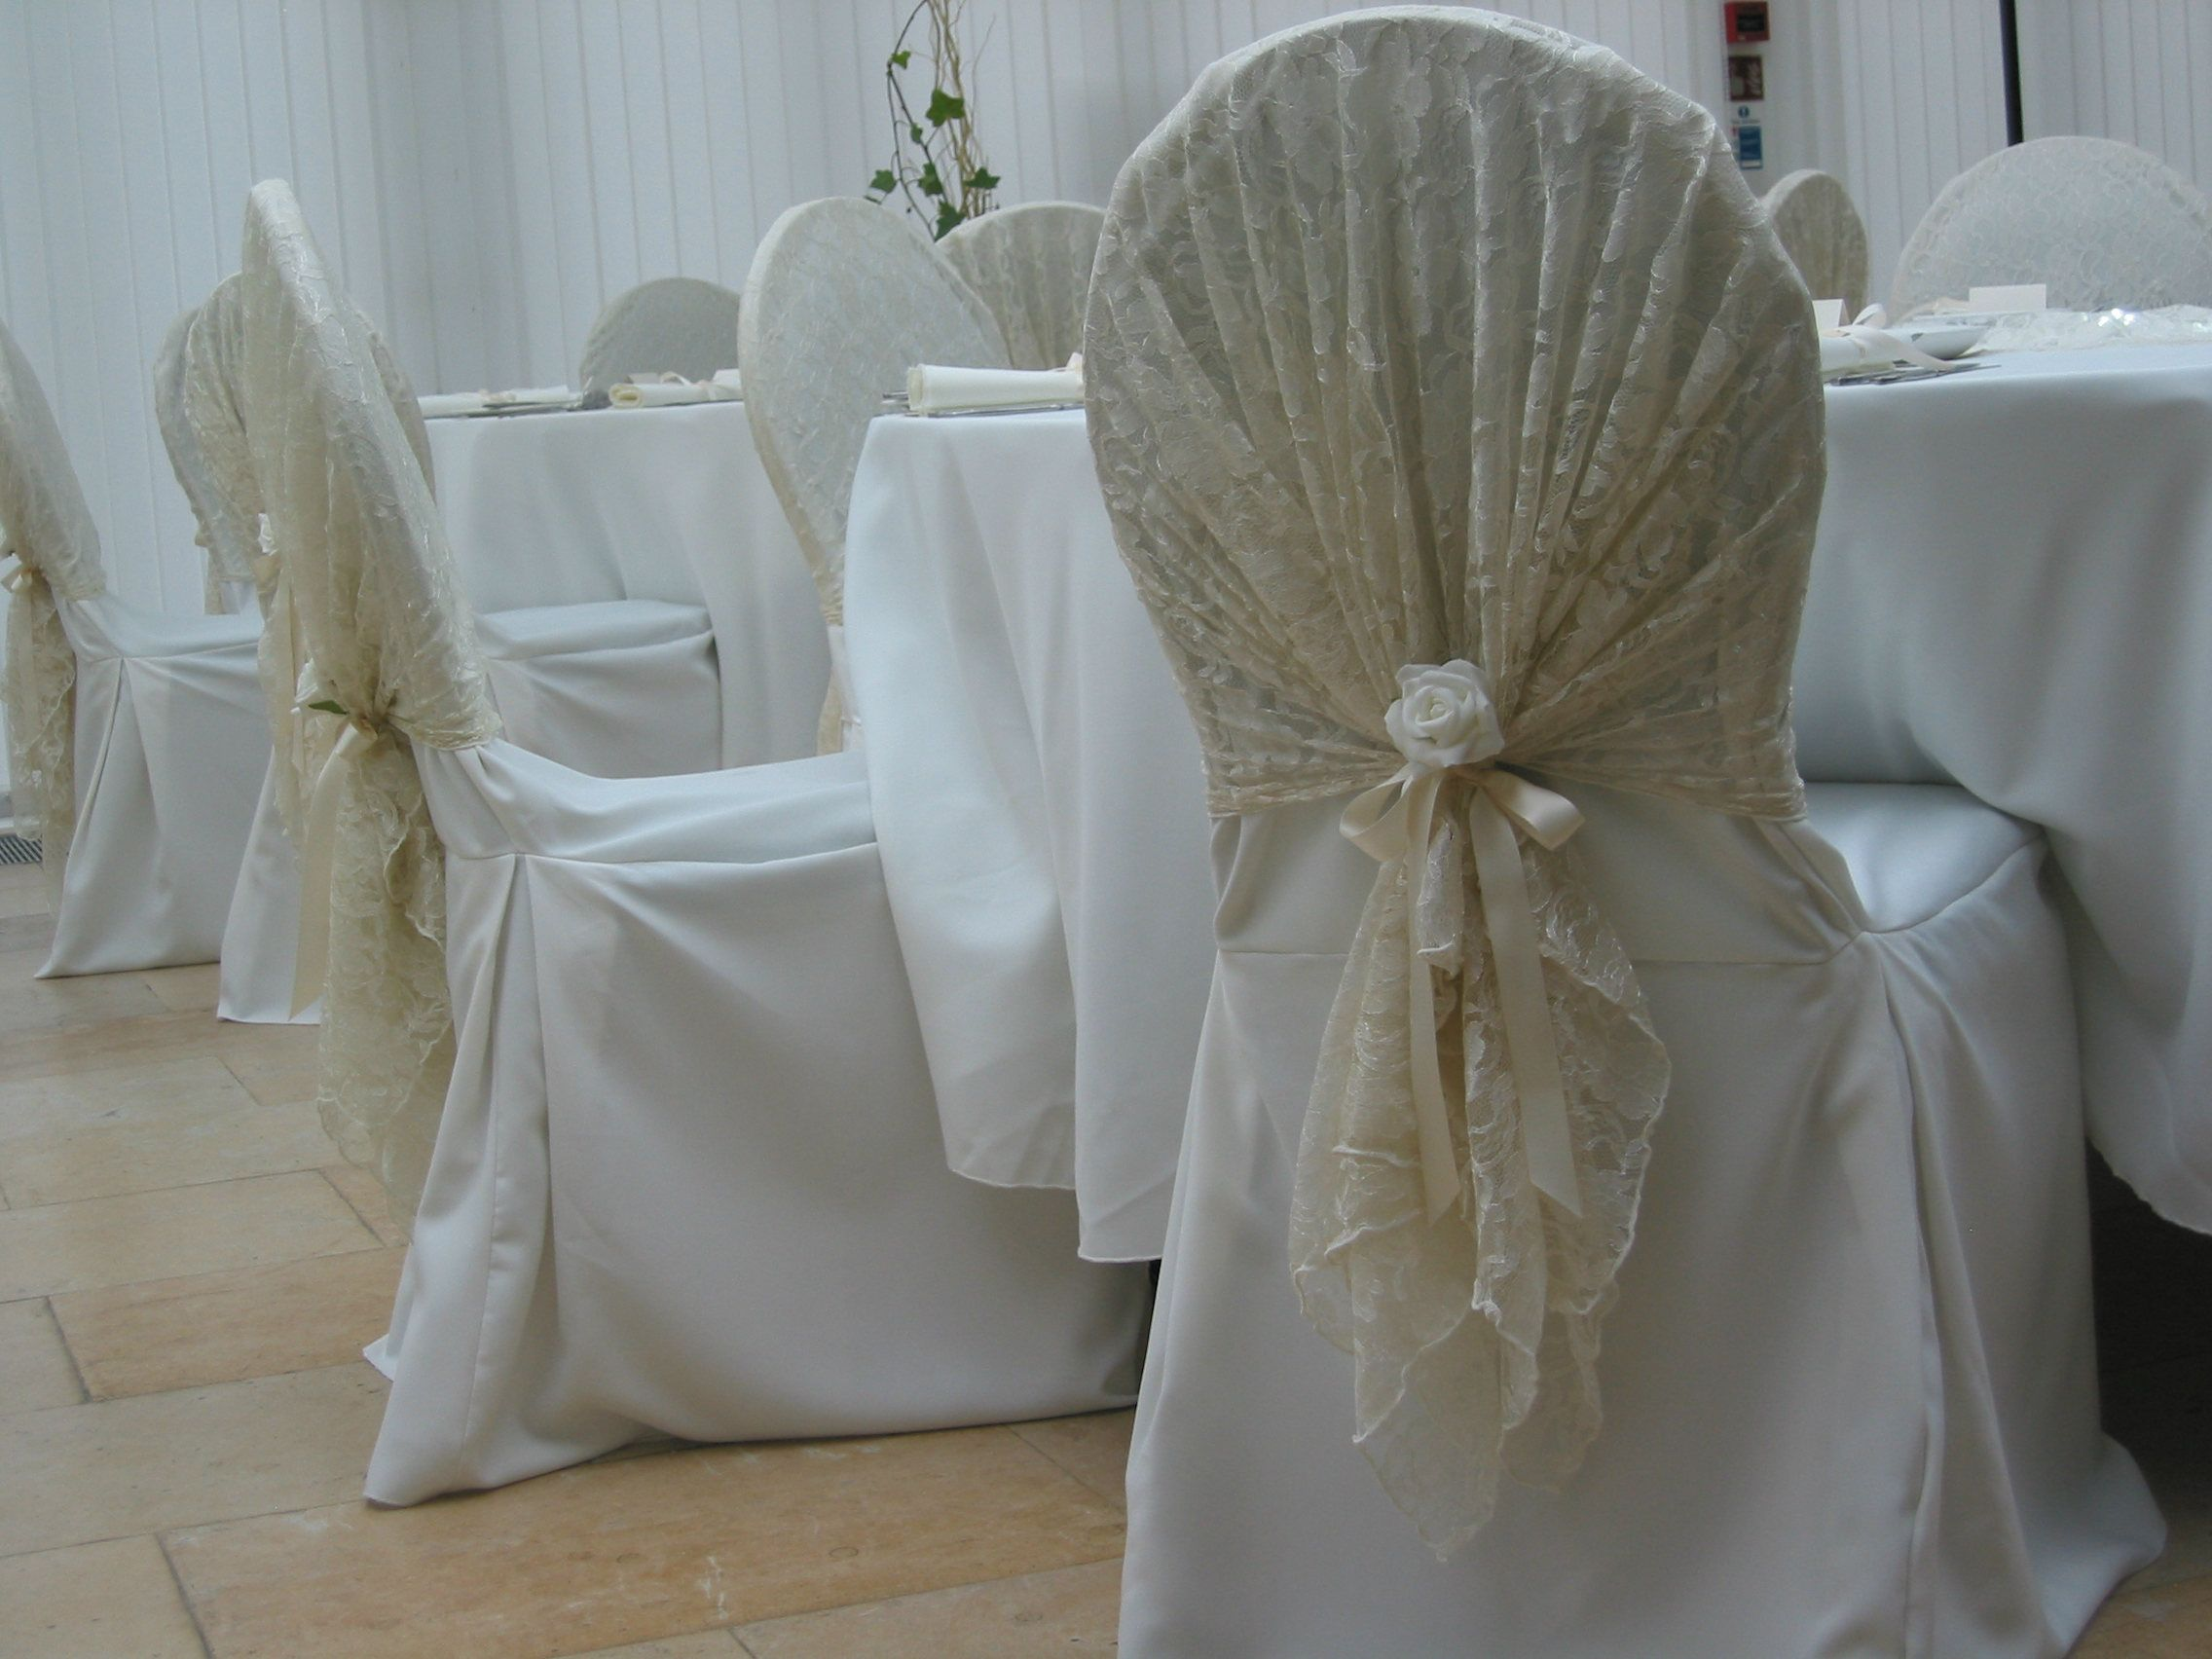 Vintage Style Lace Hoods Wedding Http Www Weddingmarket Co Uk Goods For Hire Chair Covers Sashes And Event Dressing Sillas Decoradas Sillas Bodas